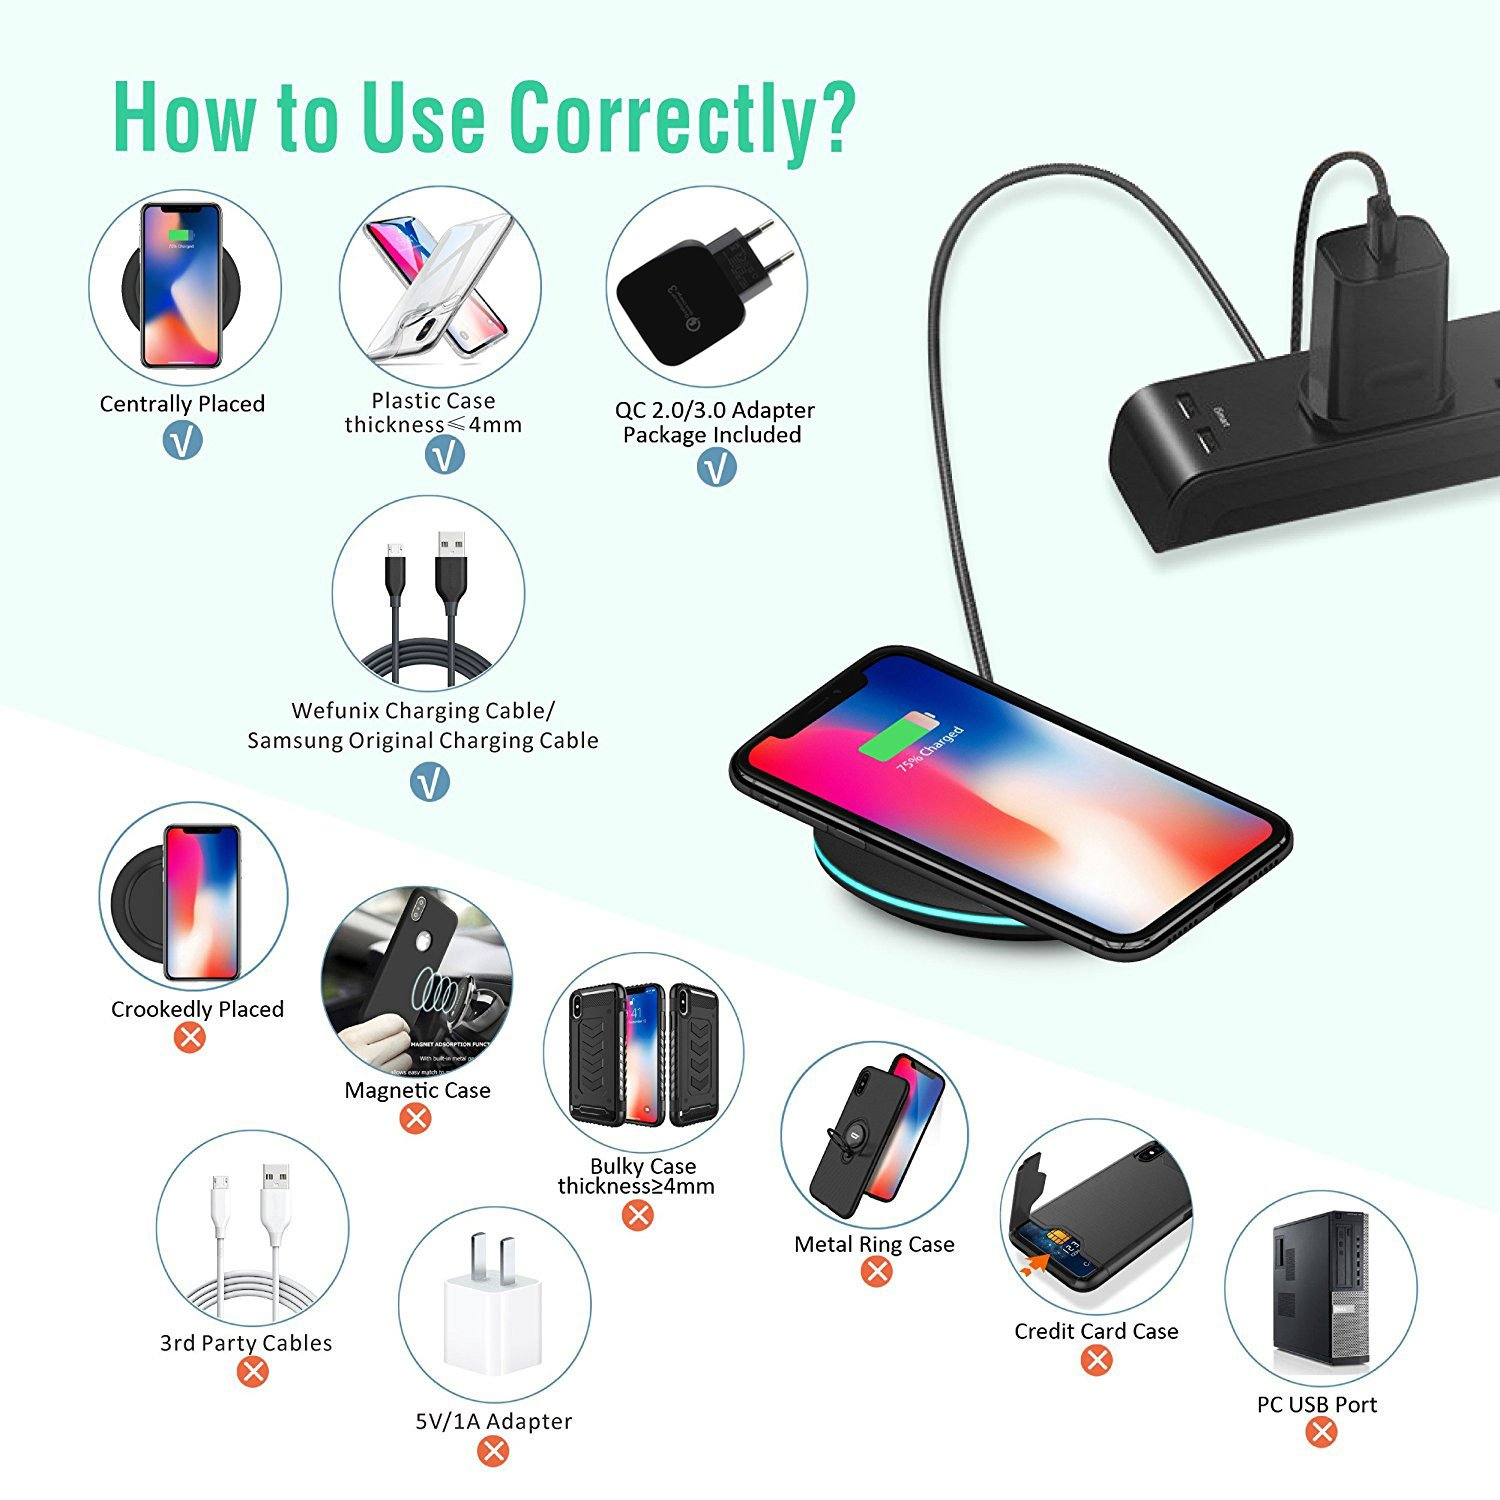 Base de Carga Inal/ámbrica 10W para Samsung Galaxy S10 S9 S8 Note 9//8-MC30 Wefunix Cargador Inal/ámbrico R/ápido Qi Quick Charge 3.0 Wireless Charger USB C 7.5W para iPhone XS MAX XR X 8 8 Plus Mix 2S